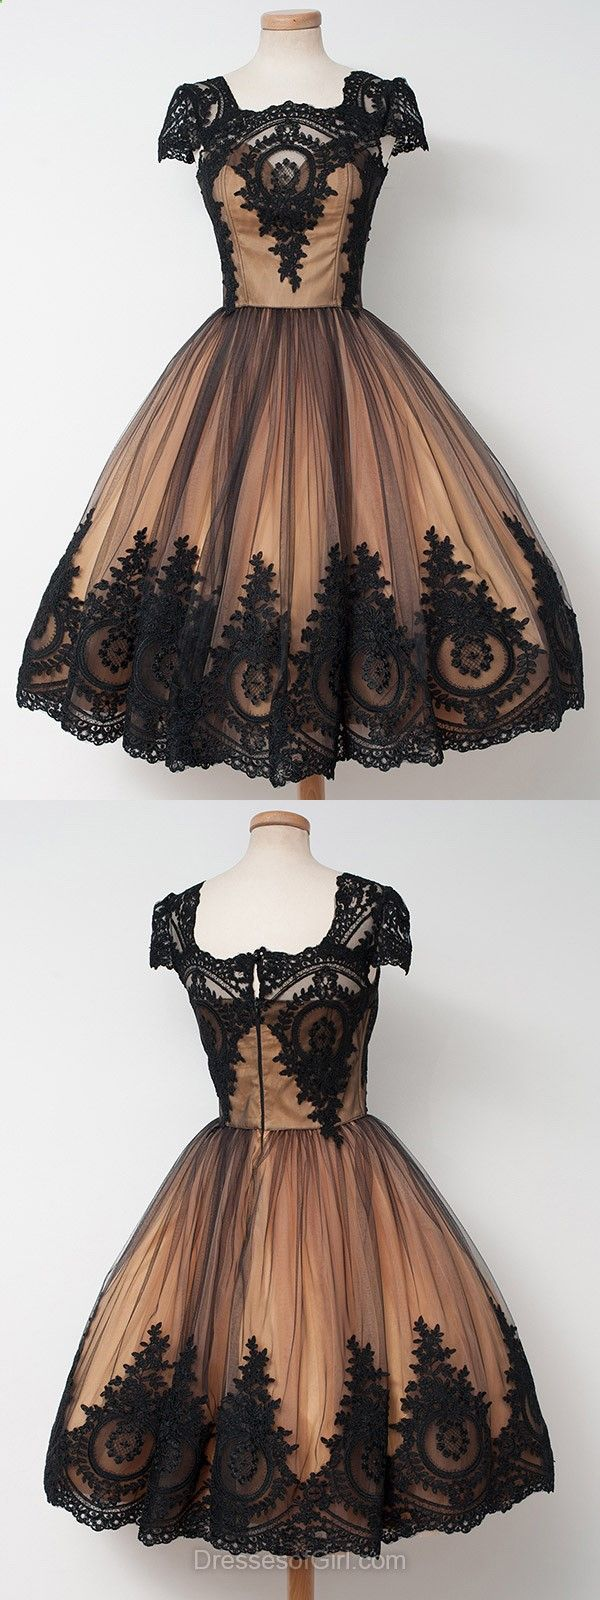 Short Prom Dress, Ball Gown Prom Dresses, Vintage Homecoming Dress, Princess Homecoming Dresses, Tulle Cocktail Dress